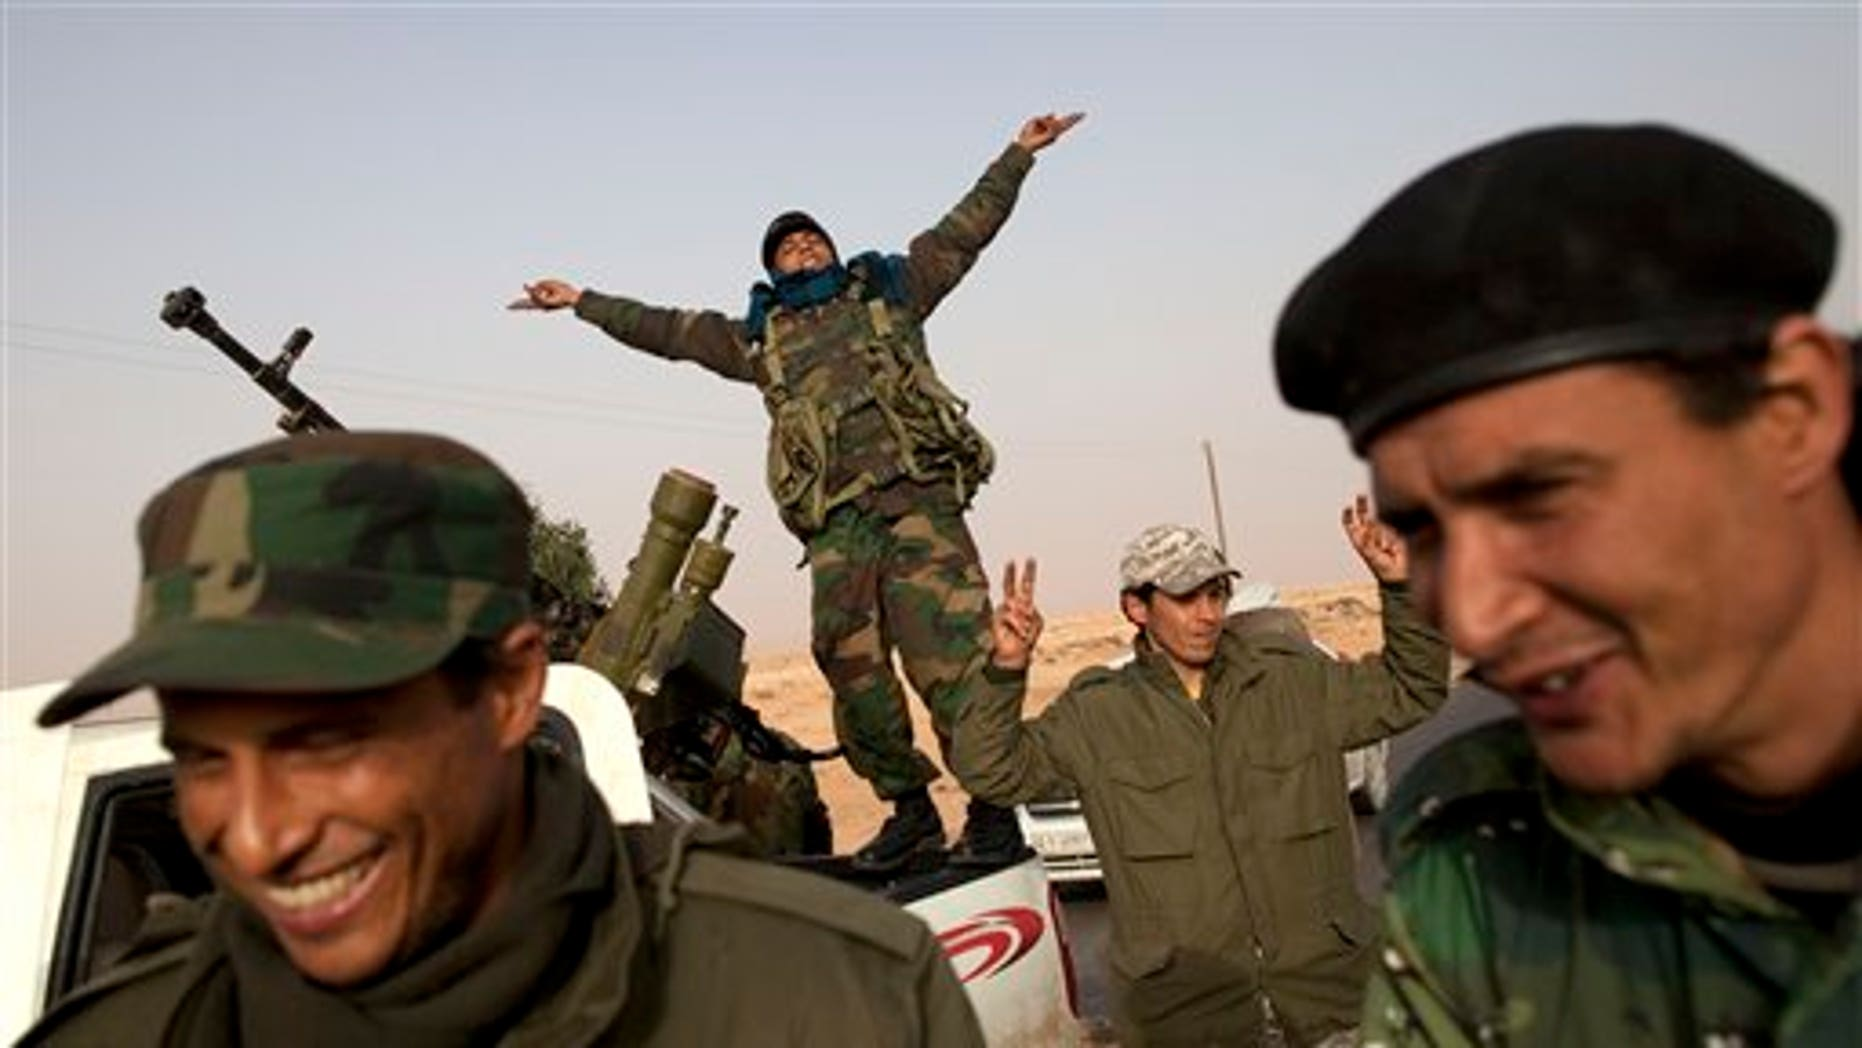 March 5: Libyan rebels who are part of the forces against Libyan leader Muammar Qaddafi celebrate their victory in fighting against troops loyal to Qaddafi, in the oil town of Ras Lanuf, eastern Libya (AP).